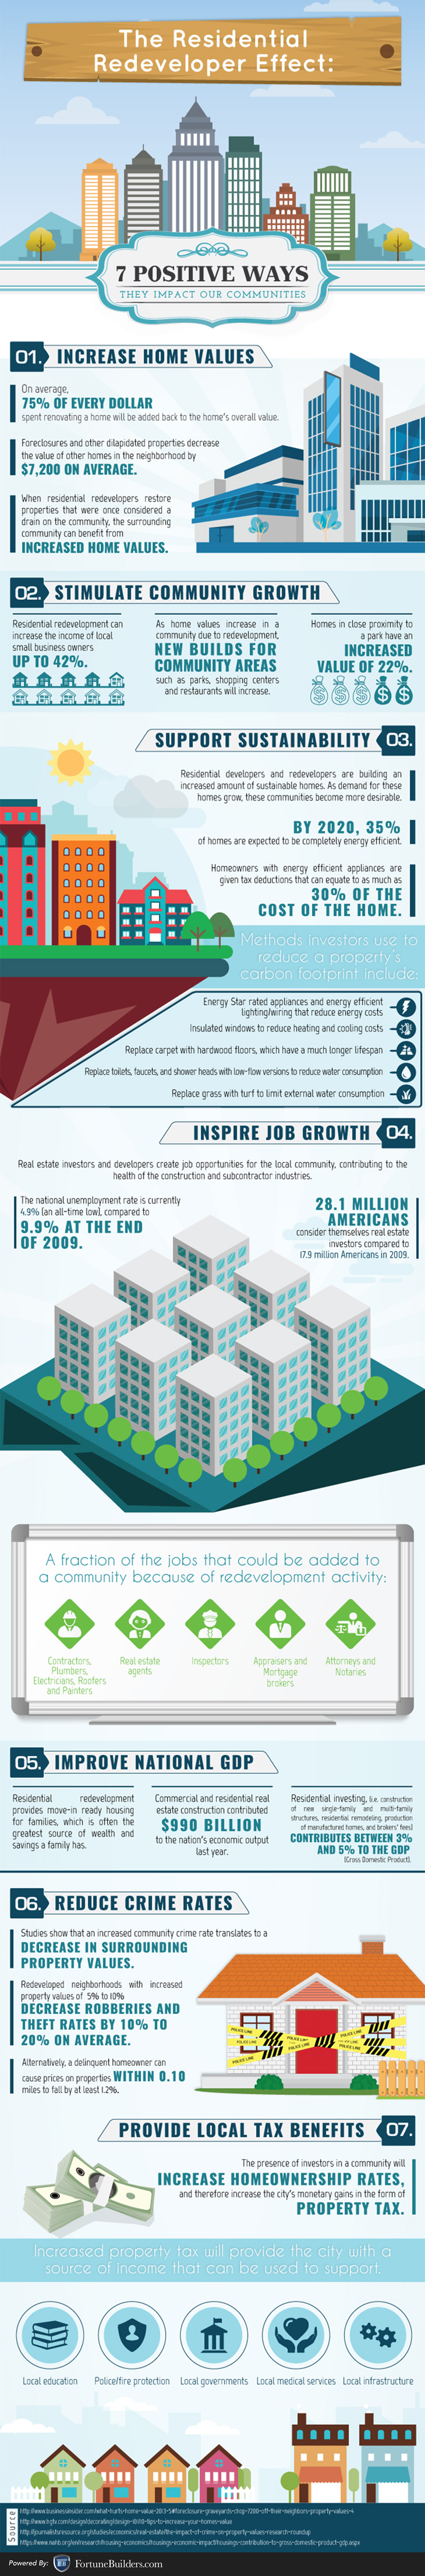 impact of residential redevelopers